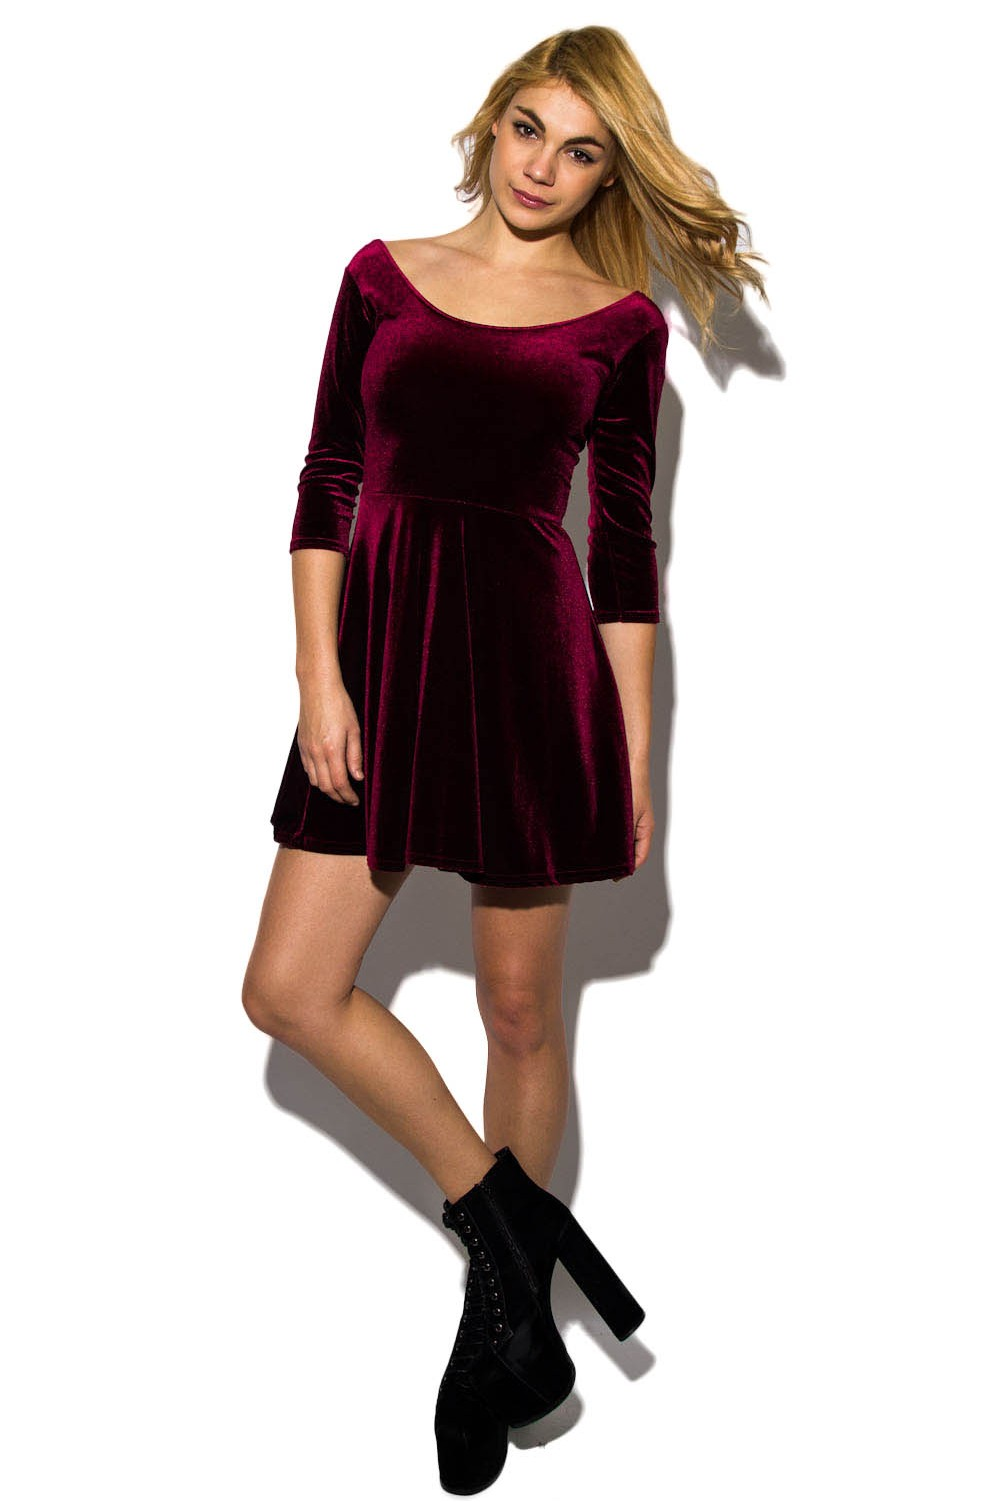 Velvet Skater Dress Picture Collection Dressedupgirl Com